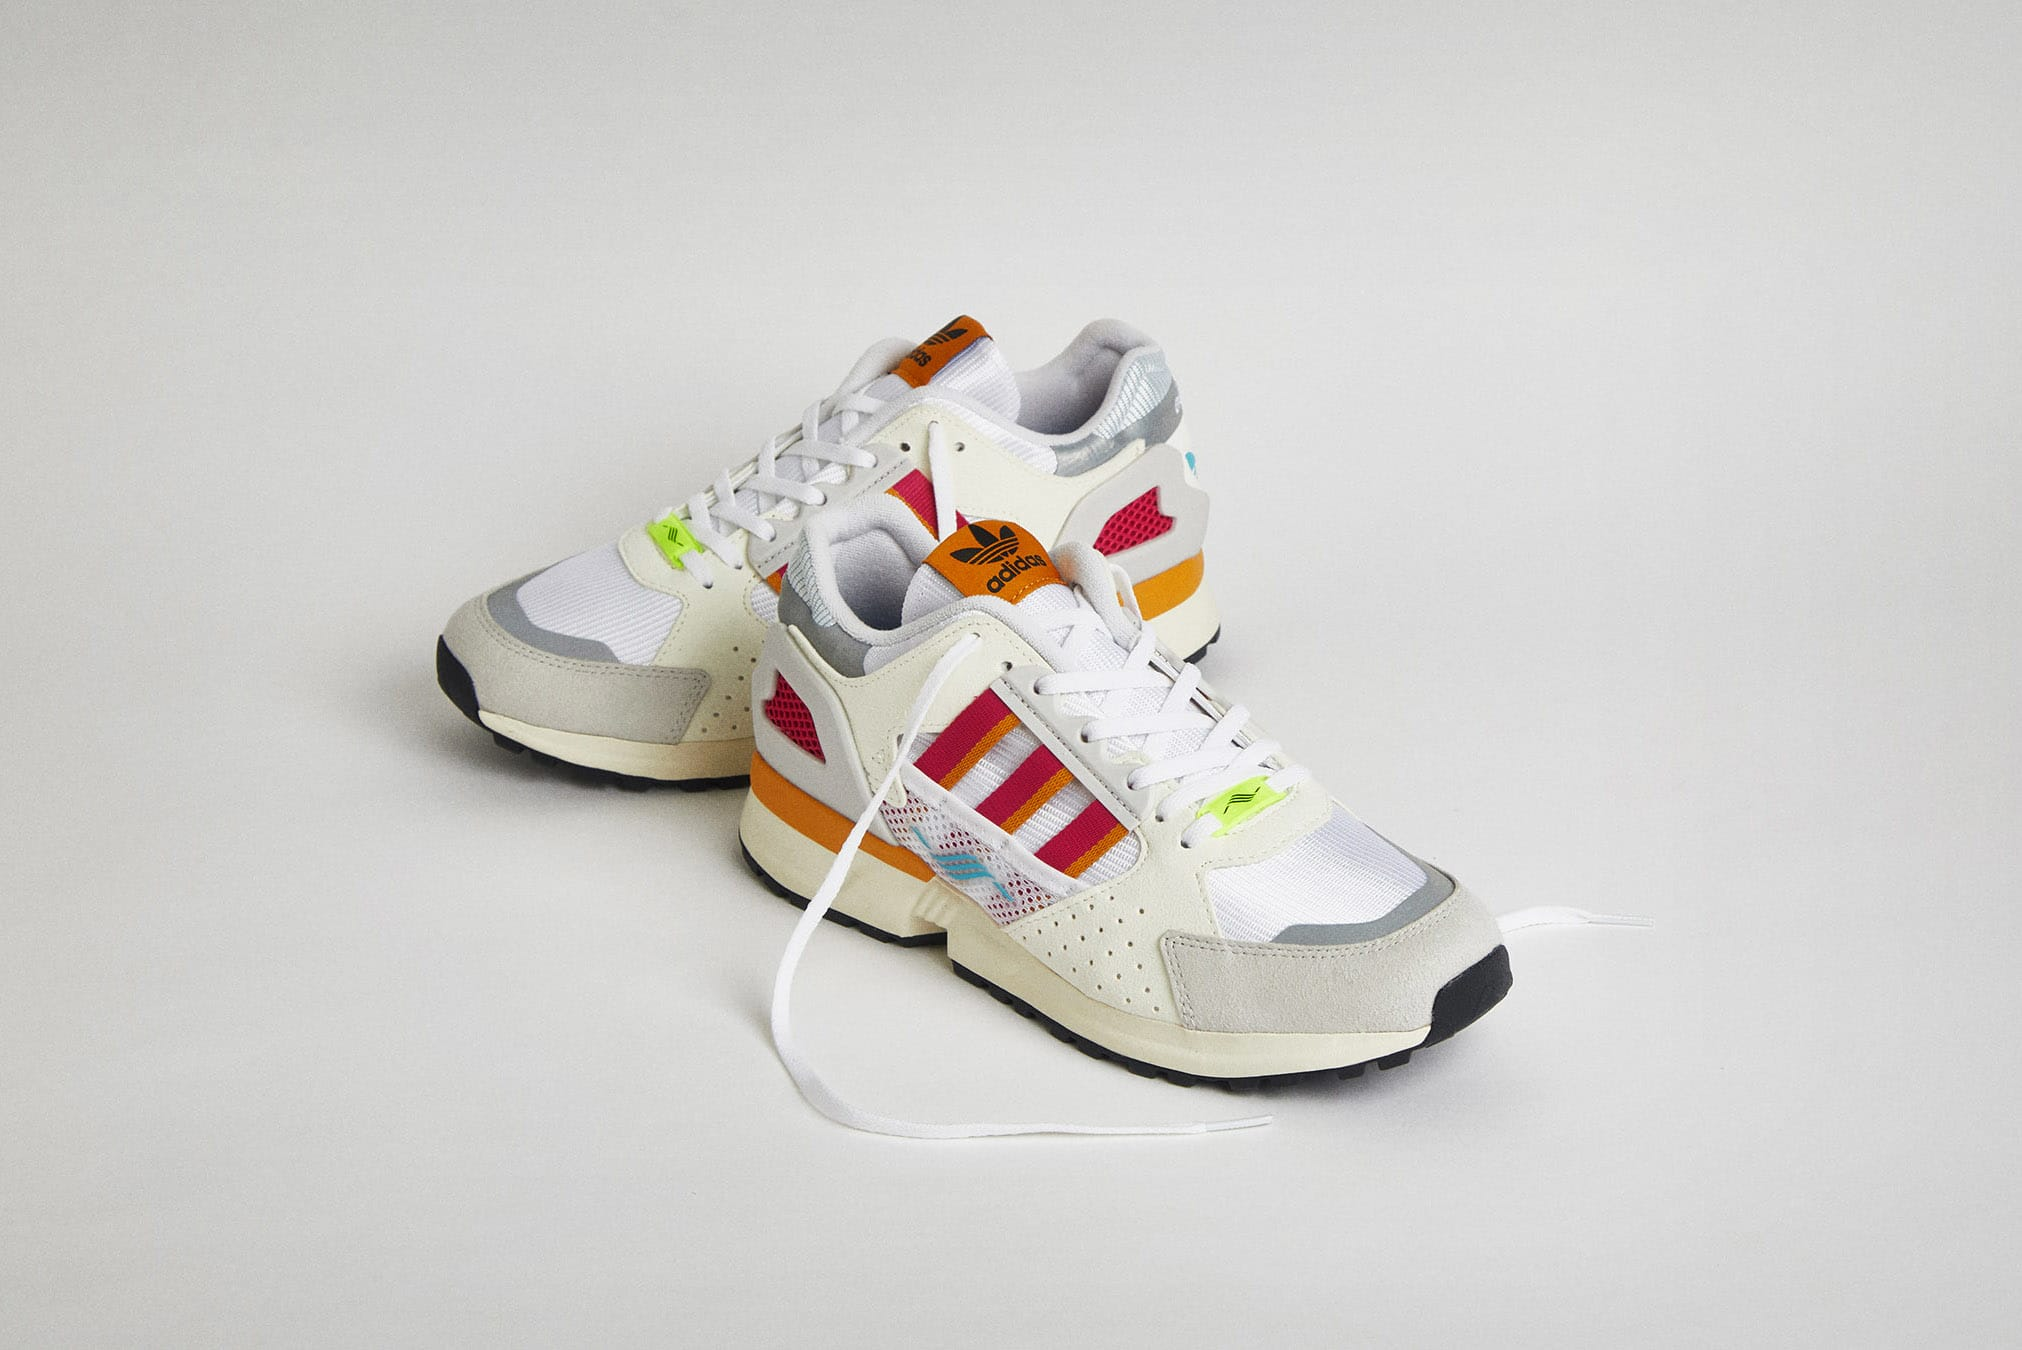 END. Features | adidas ZX 10,000 C - Register Now on END. Launches